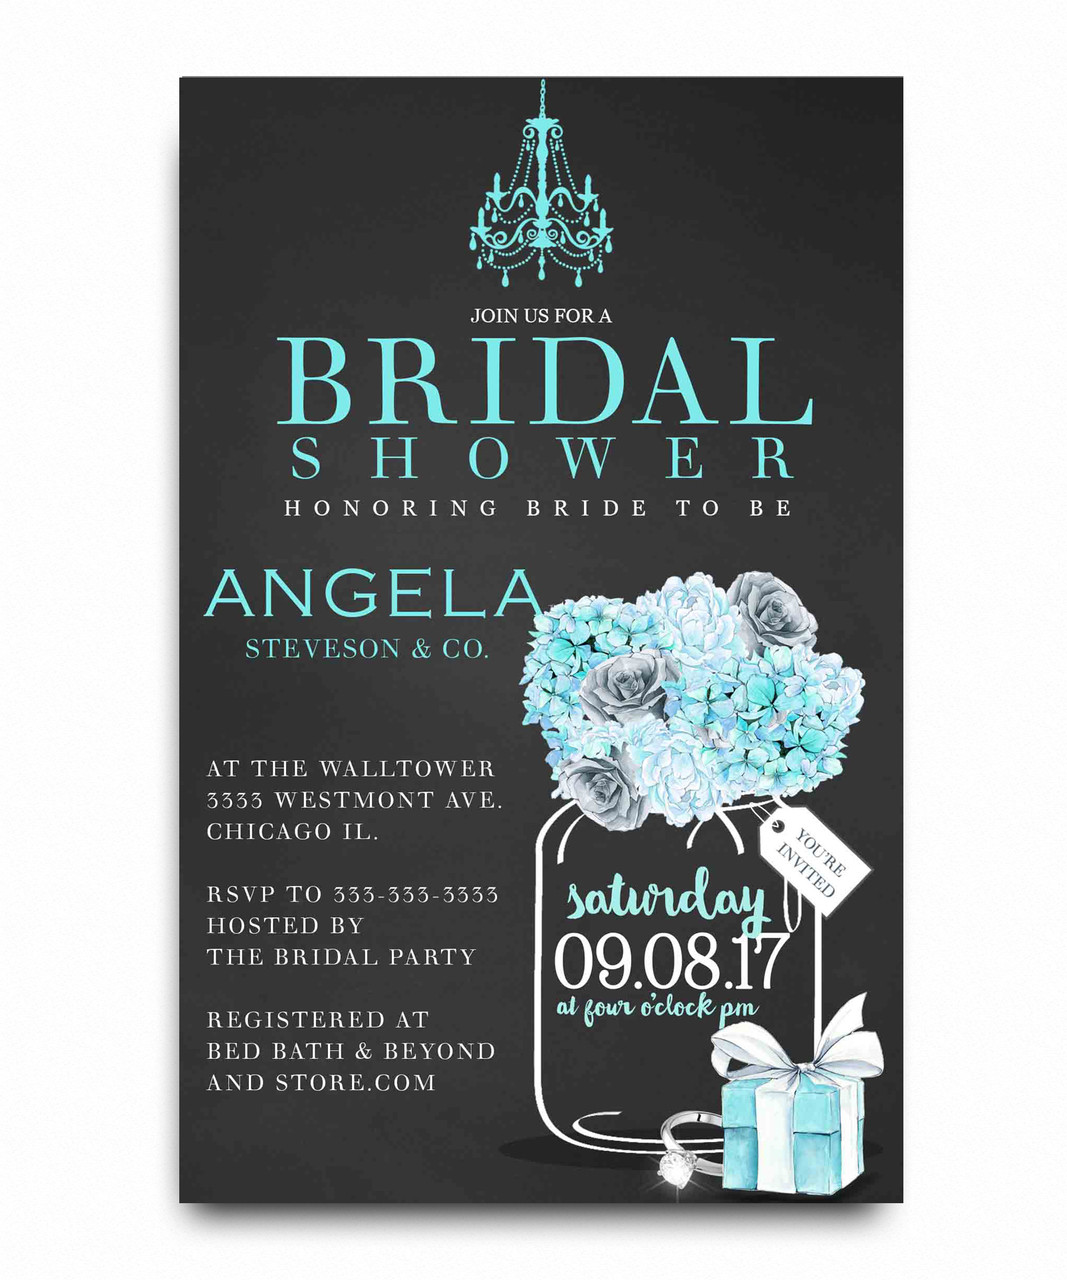 Bride Magazine bridal shower invitation